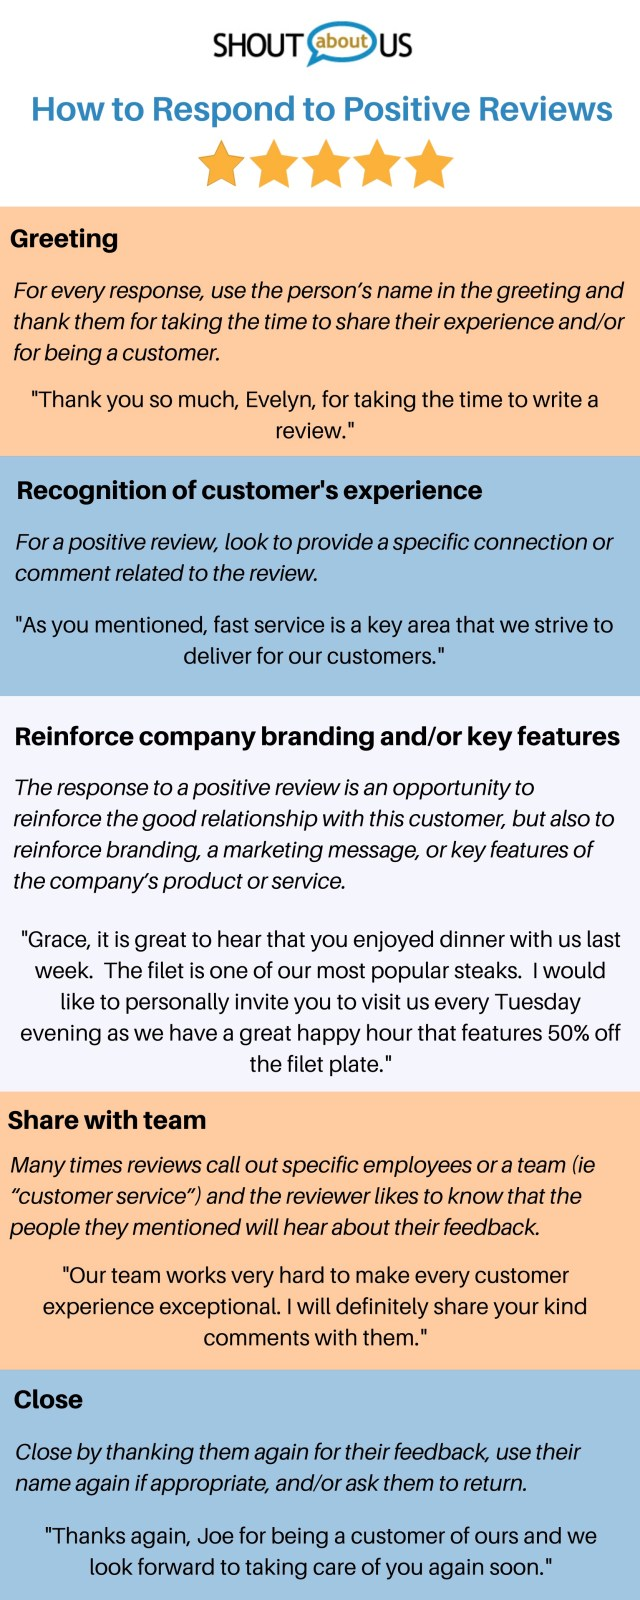 How to Respond to Positive Online Reviews of Your Business